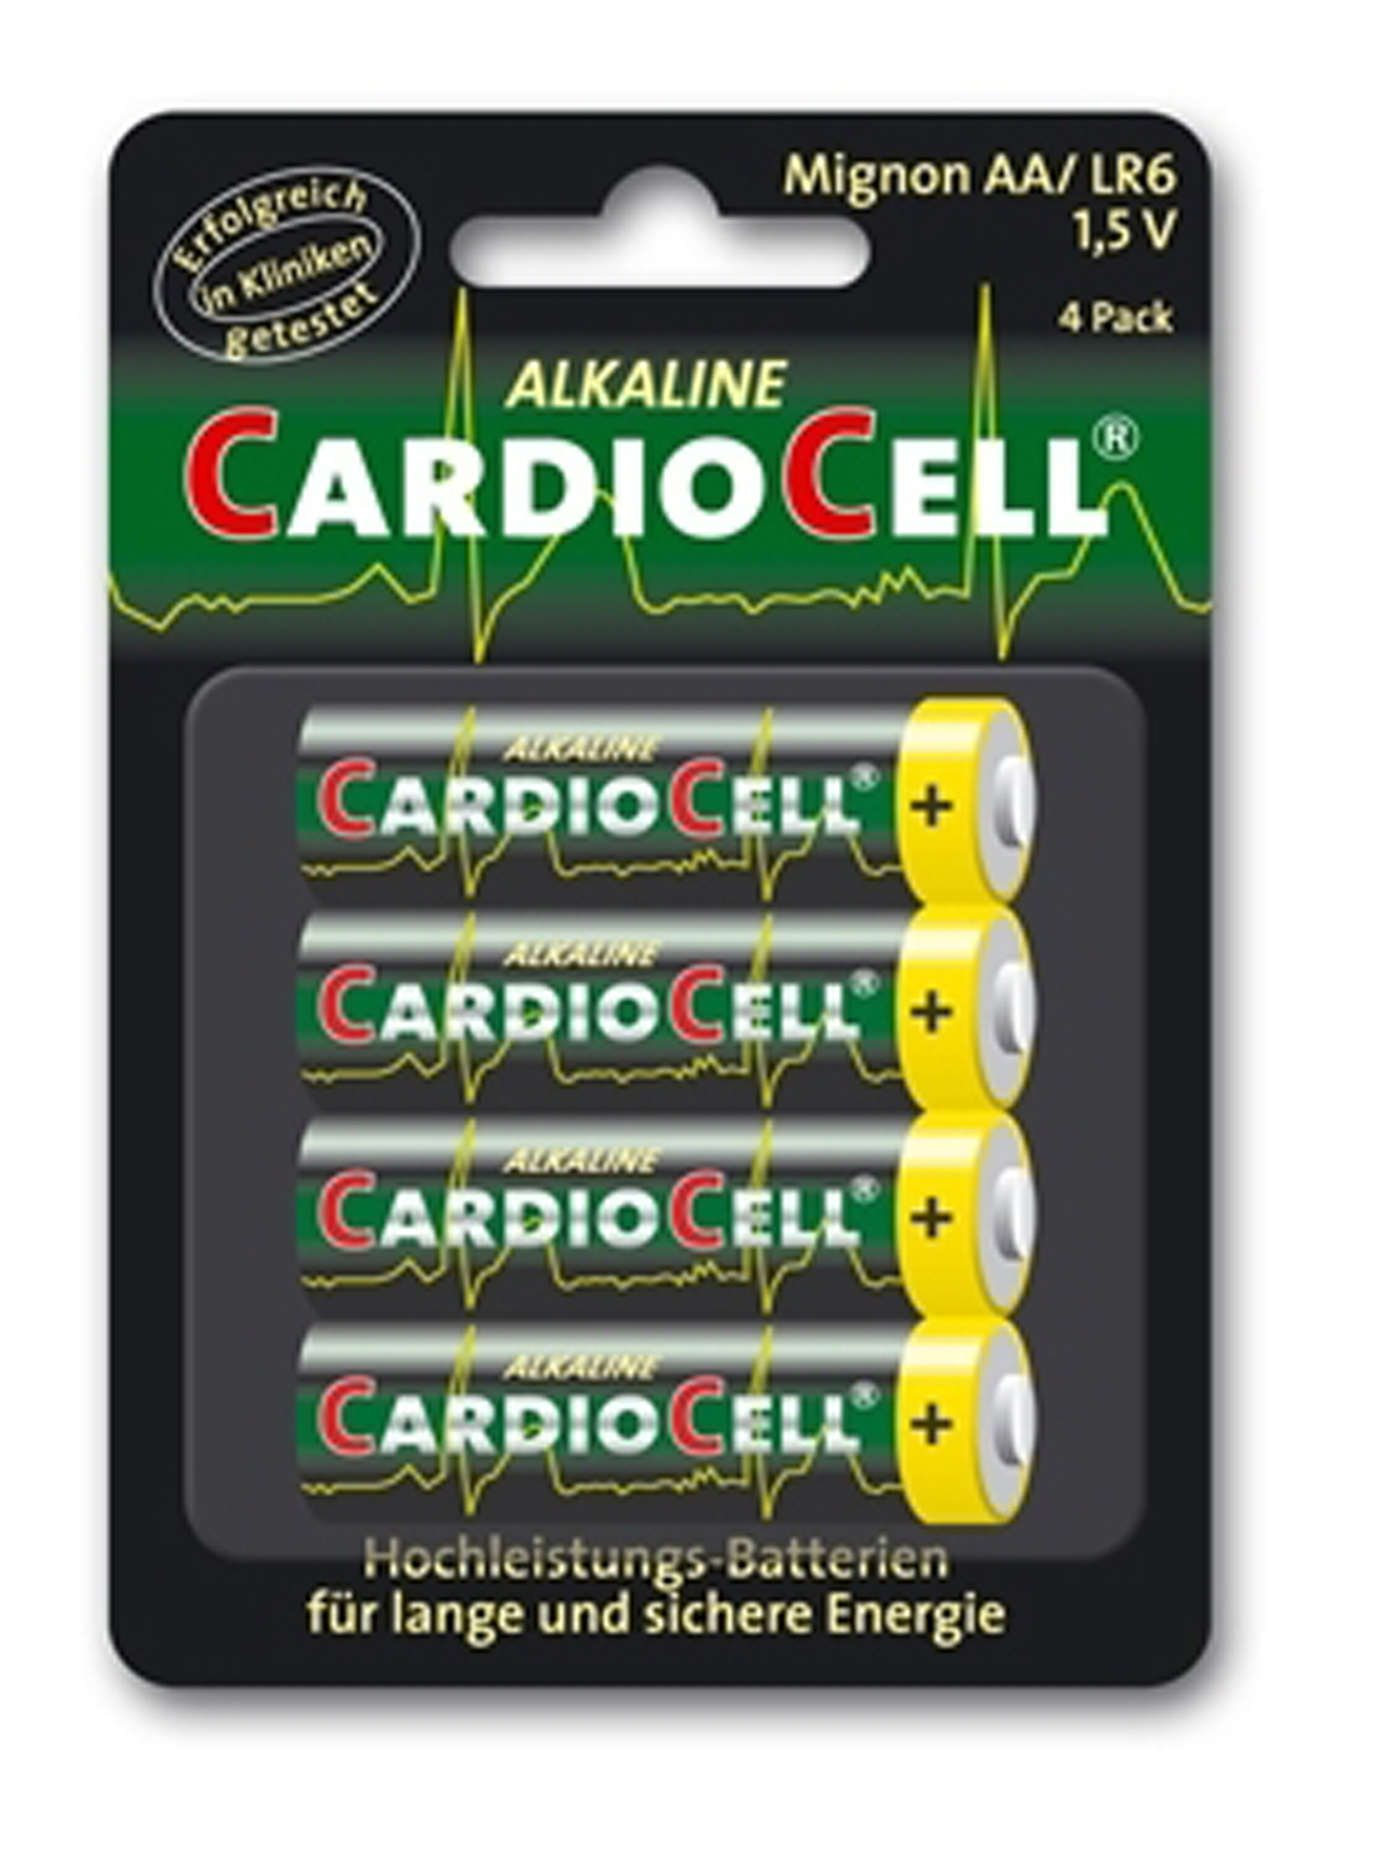 Cardiocell Batterie Mignon Plus AA-LR6 Lot de 4